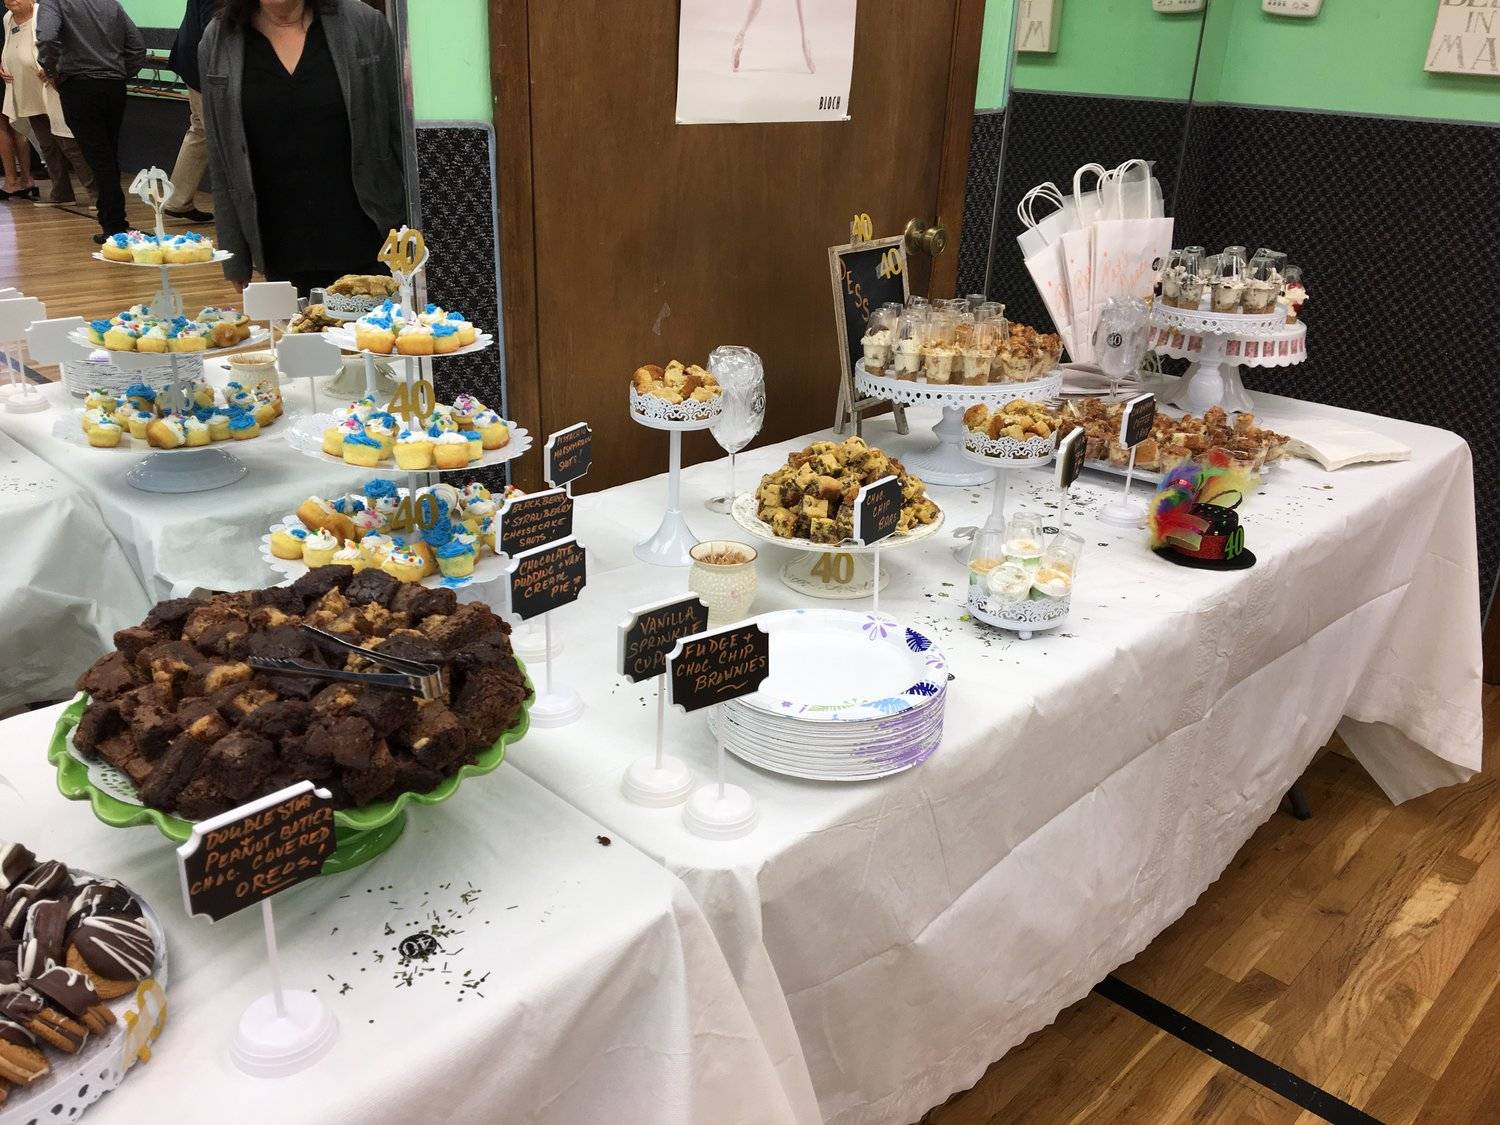 The celebration was fit with a spread of desserts and drinks.